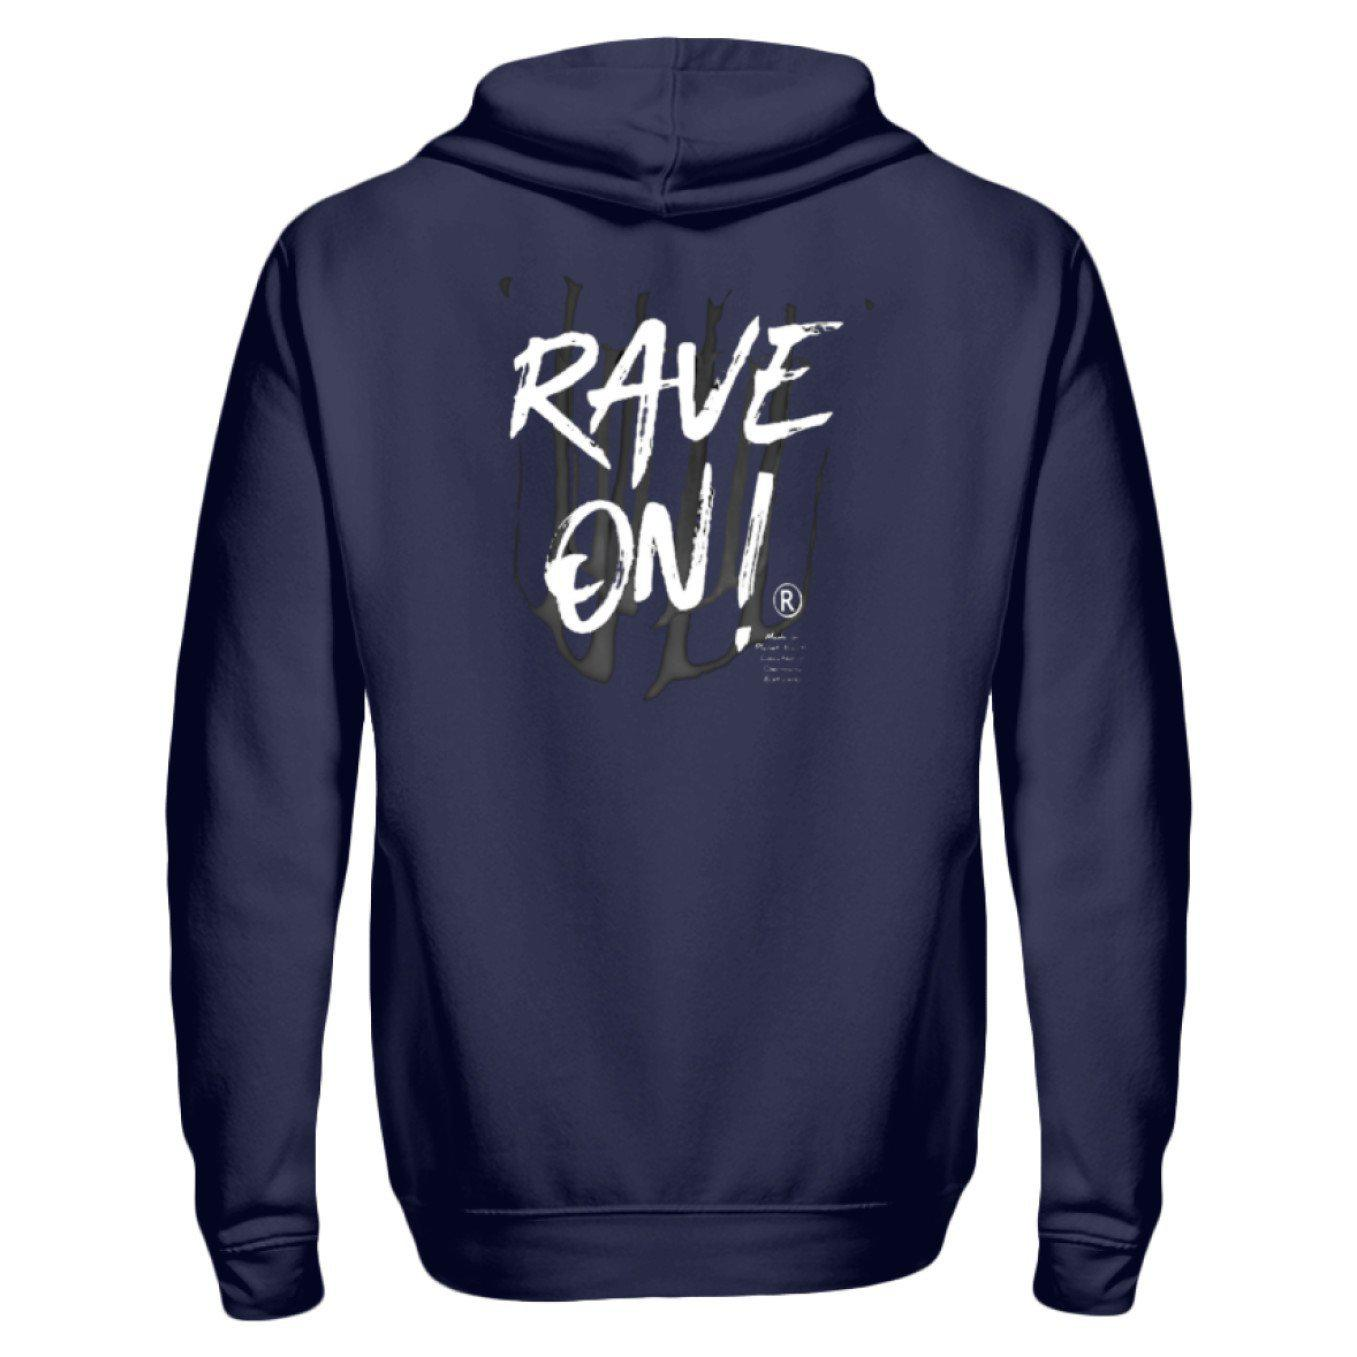 Rave On!® - Made On Planet Earth B2k20 - Zip-Hoodie-ZipperB-Navy-S-Rave-On! I www.rave-on.shop I Deine Rave & Techno Szene Shop I boy hoodie, brand, damen hoodie, Design - Rave On!® - Made On Planet Earth B2k20, girl hoodie, girls hoodie, herren hoodie, herren pullover, hoodie, hoodies, hoody, hoodys, kapuze, kapuzenpullover, madeonpr, marke, on, pullover, pullover mit kapuze, rave, raver, techno, unisex, unisex hoodie, unisex hoody, unisex kapuzenpullover, unisex pulli, unisex pullover - Sexy F